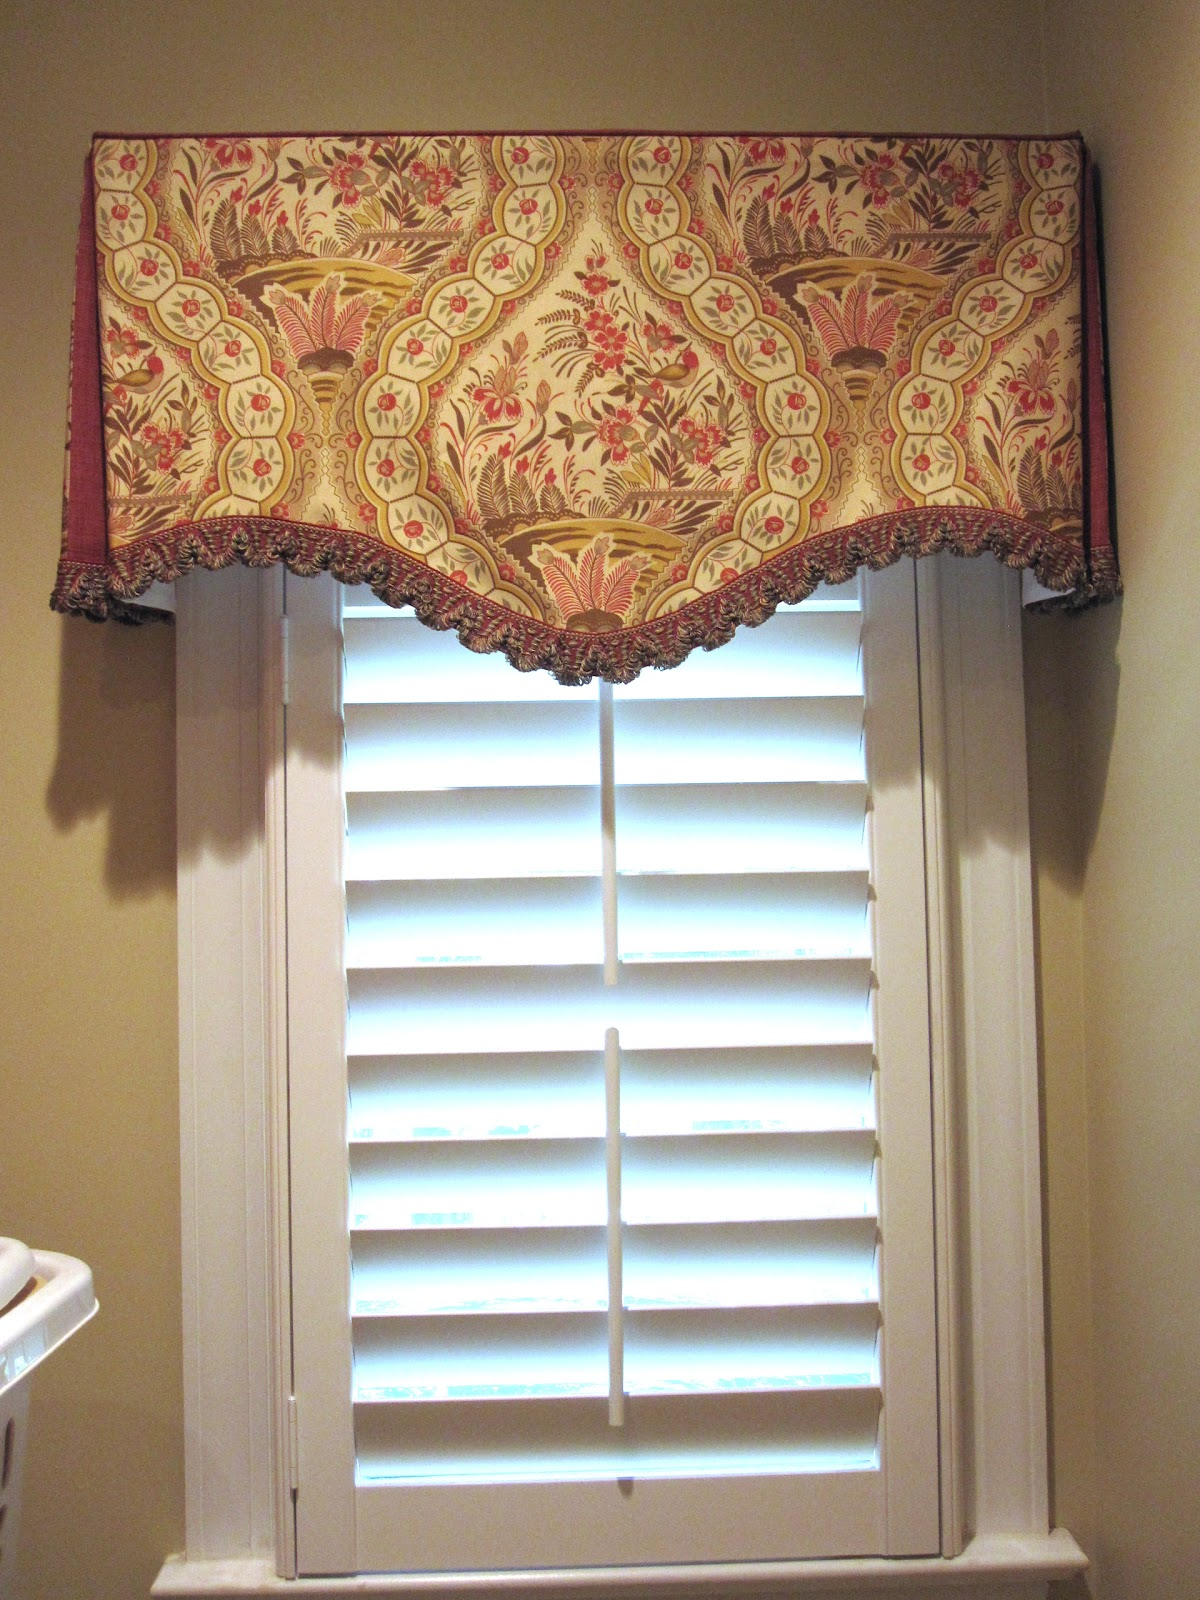 Window treatments decoration designs guide for 18 inch window blinds